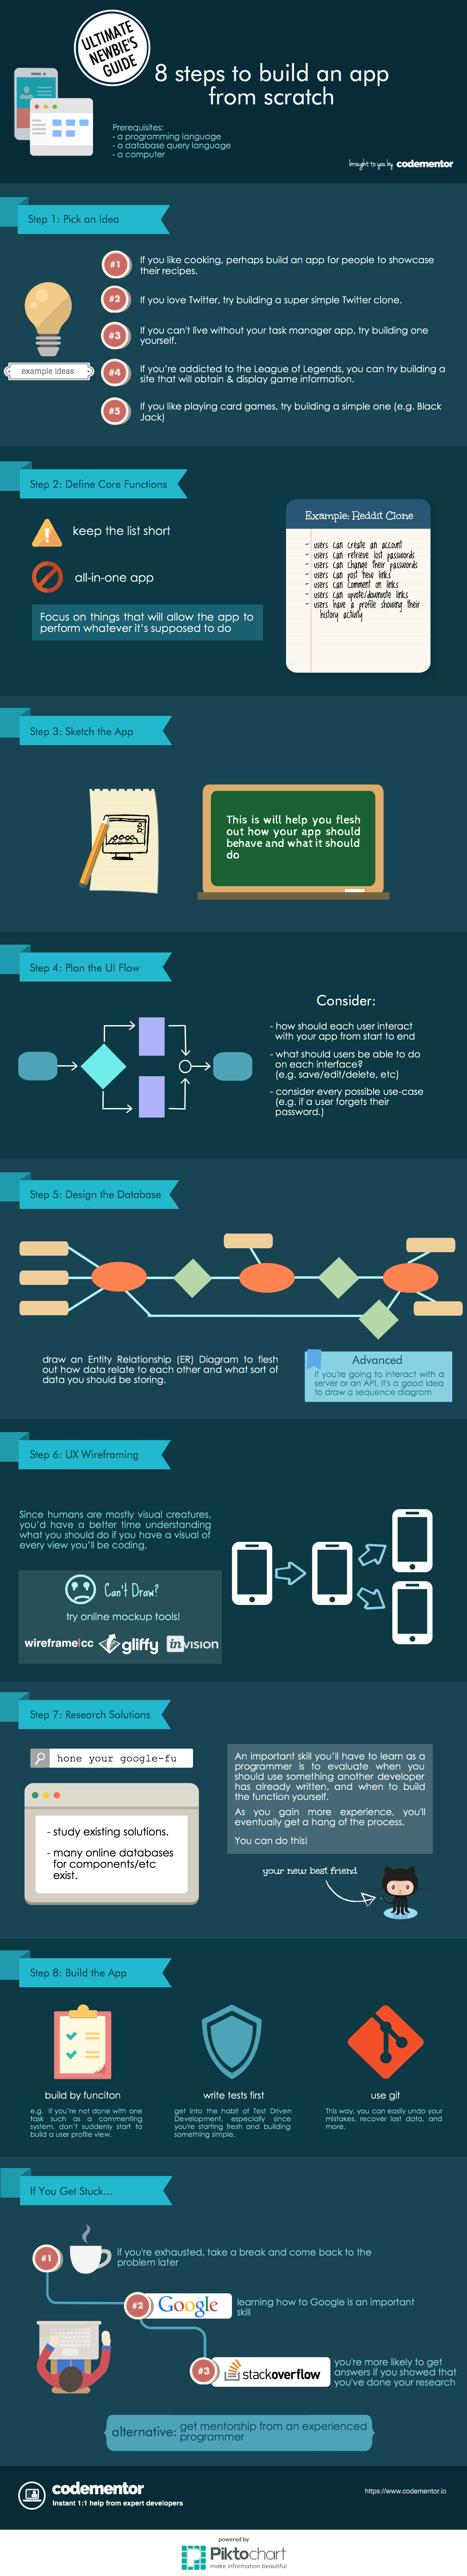 Pin on Codementor infographics for Coding Newbies